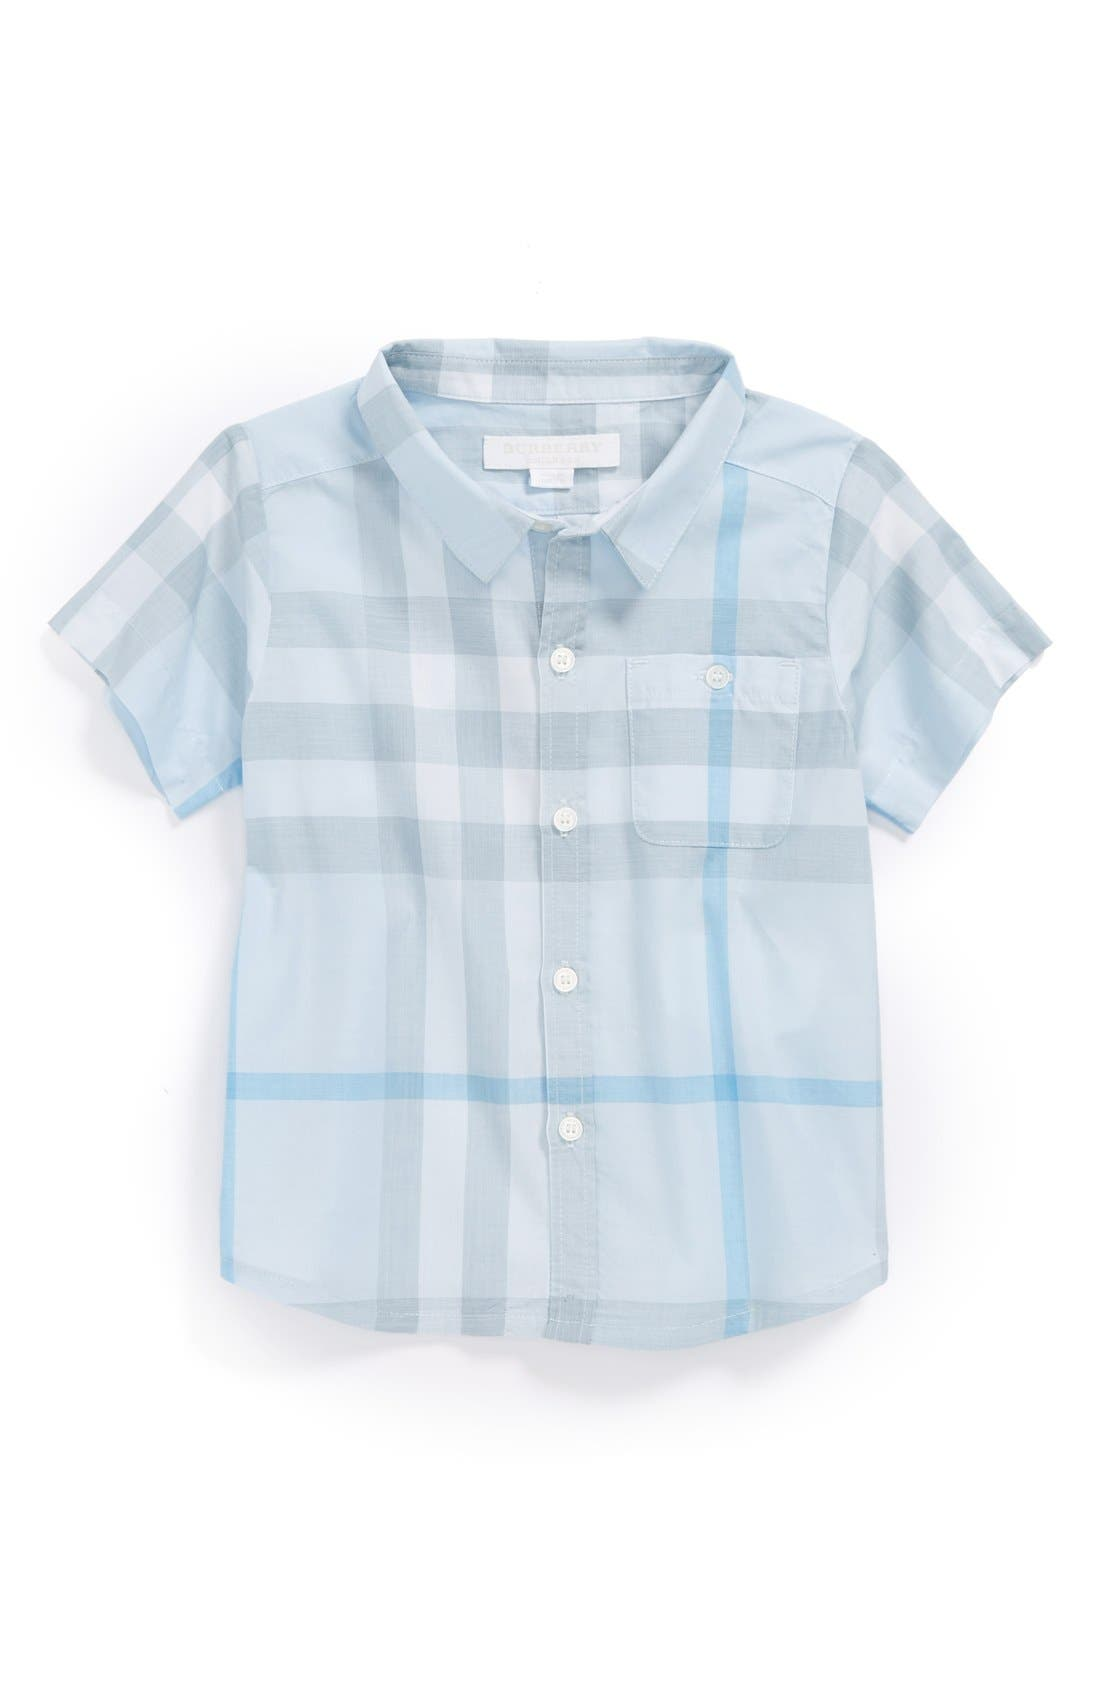 Alternate Image 1 Selected - Burberry 'Tyson' Check Pattern Woven Shirt (Baby Boys)